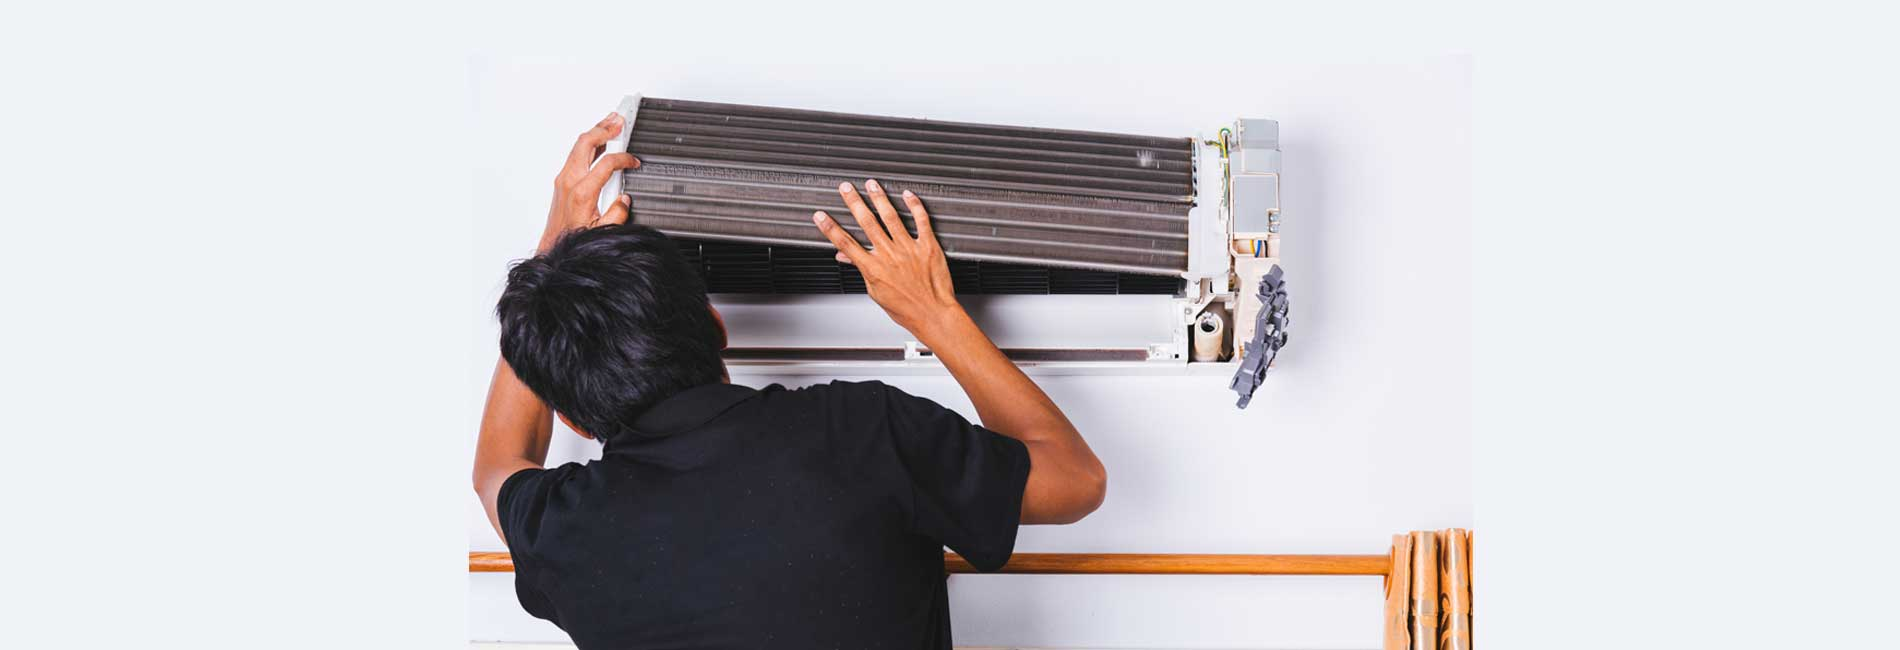 Panasonic AC Installation in Vengaivasal